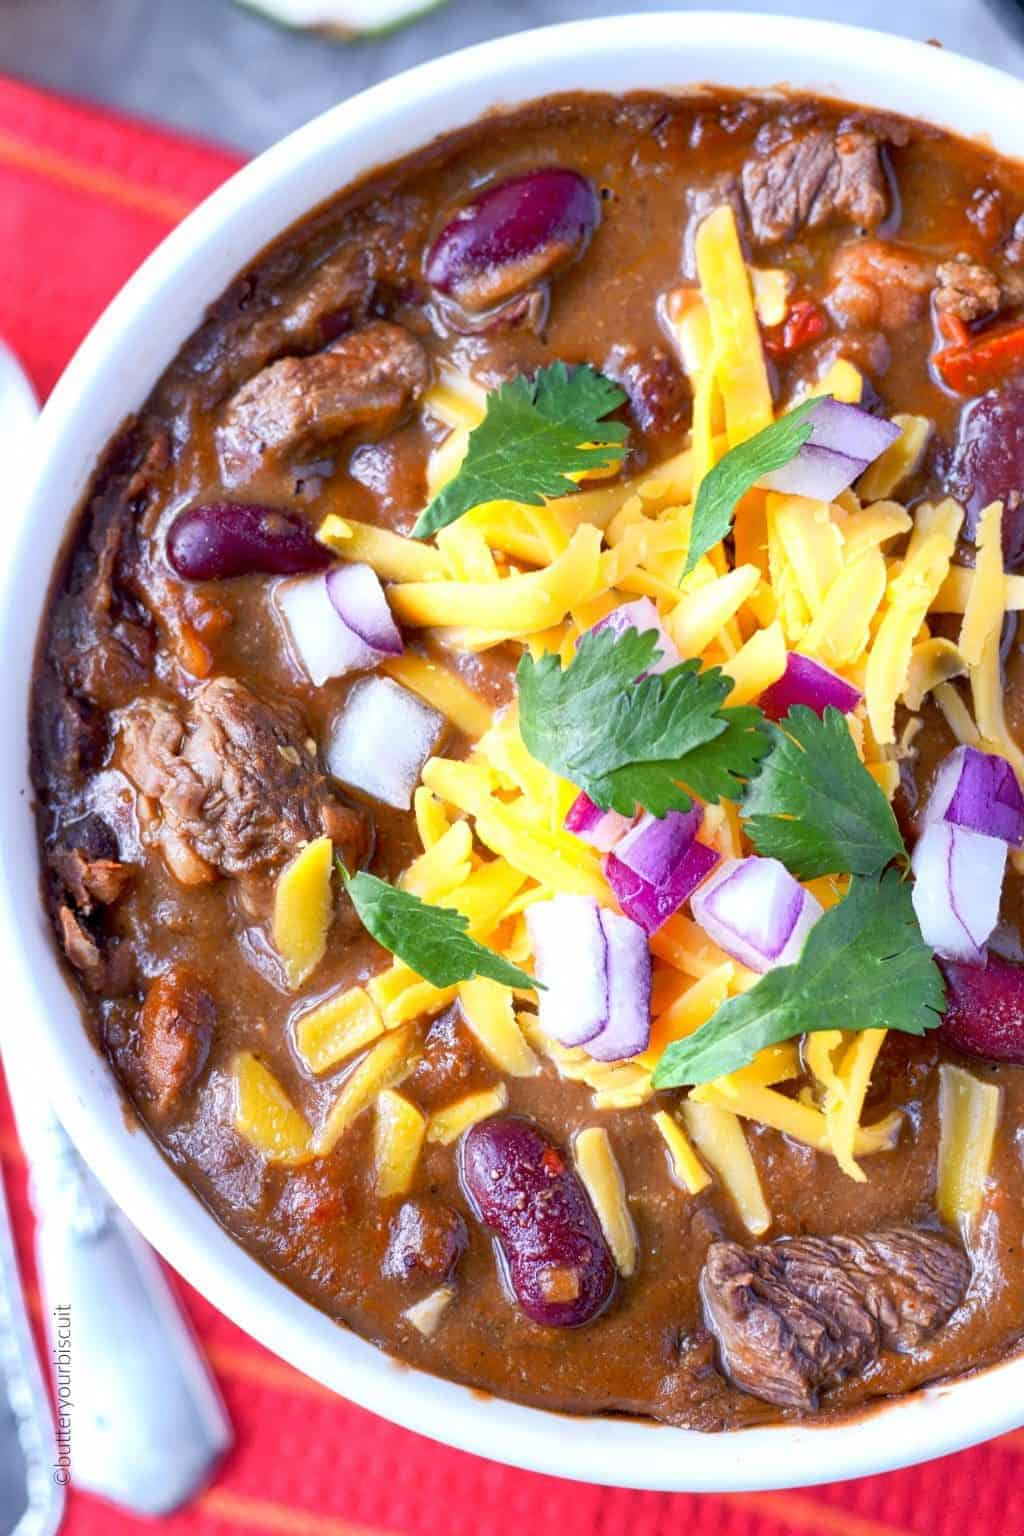 Ribeye steak chili in a white bowl